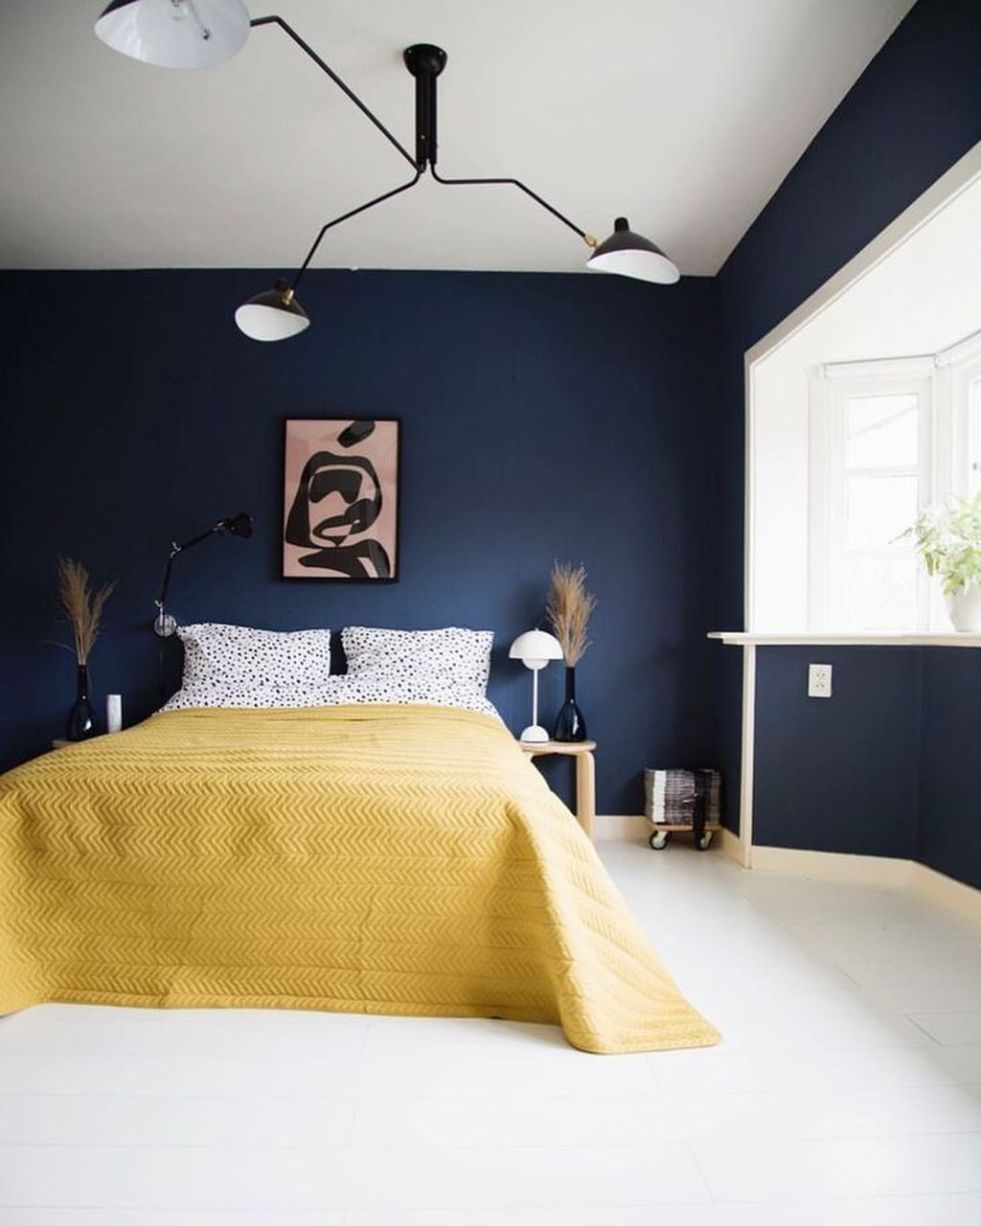 31 Mixing Blue And Mustard For Interior 30 Blue Bedroom Decor Yellow Bedroom Walls Apartment Bedroom Decor